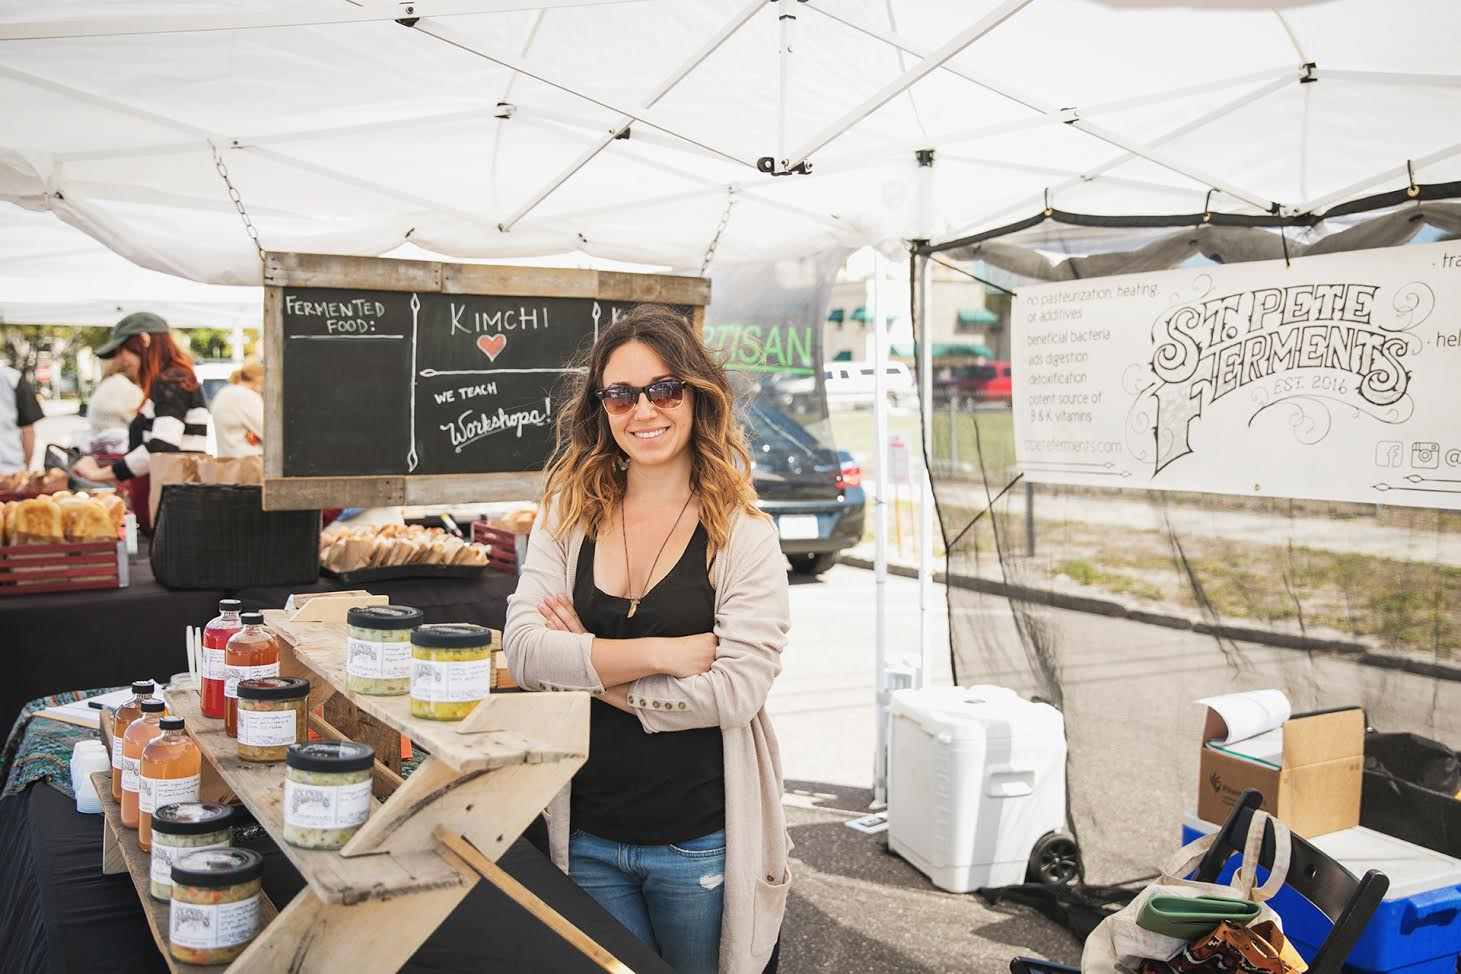 Join us as we welcome Sarah Arrazola with  St. Pete Ferments into our kitchen as a guest speaker!  The month of May is the last main month of our farming season and Sarah will be speaking about turning some of your favorite produce into a probiotic drink! She'll run down the do's and do not's and demonstrate for you how it's done.  In this demonstration we will be featuring produce from The Edible Peace Patch and we'll share with you a little bit more about their amazing non-profit organization!  This demonstration is free with a donation and everyone is welcome!  Urban Canning will provide snacks and beverages!